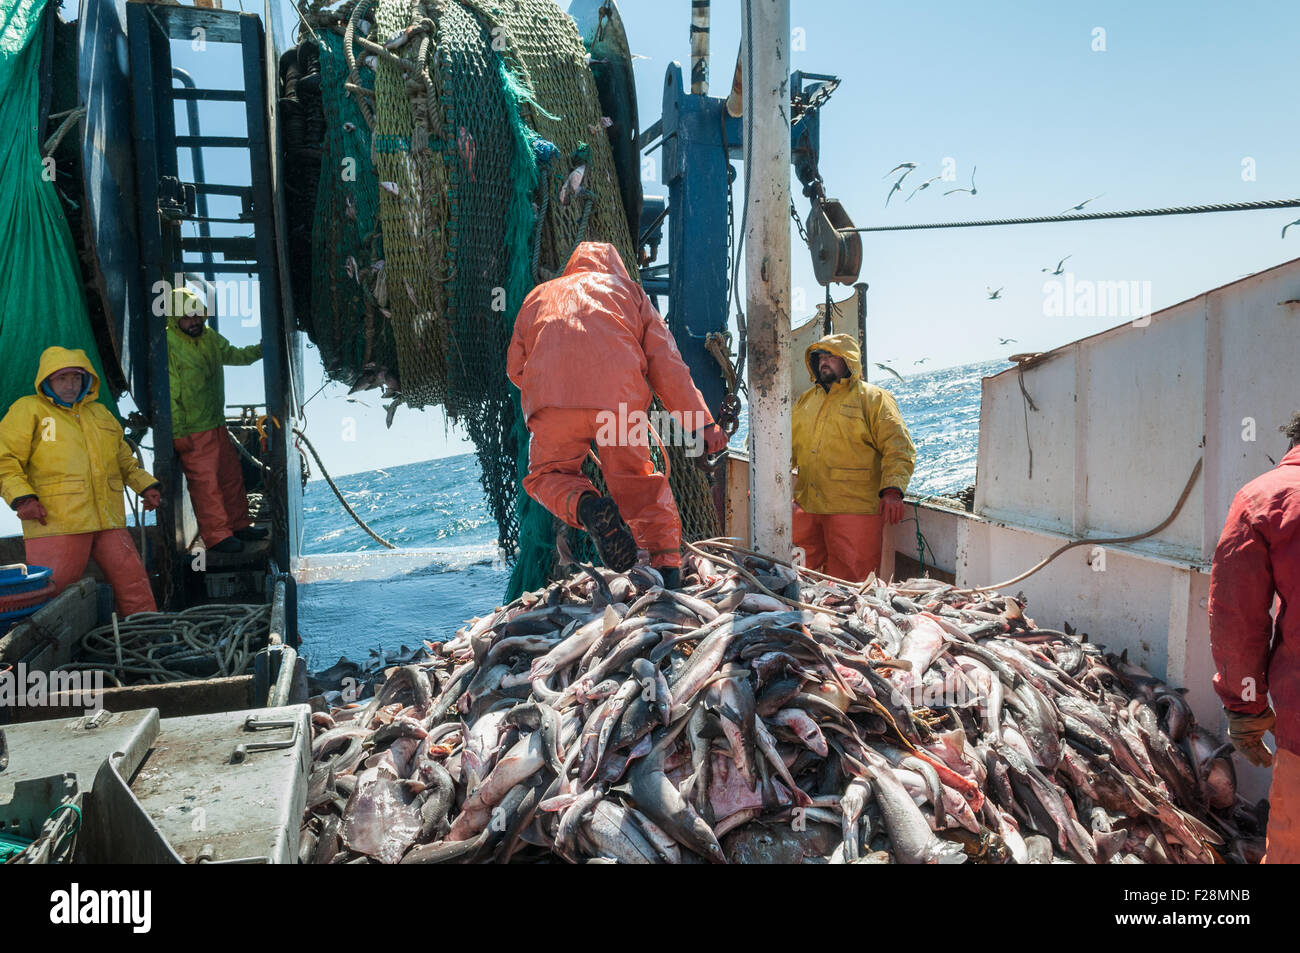 dogfish sharks on deck of offshore fishing dragger.  Georges Bank, New England - Stock Image